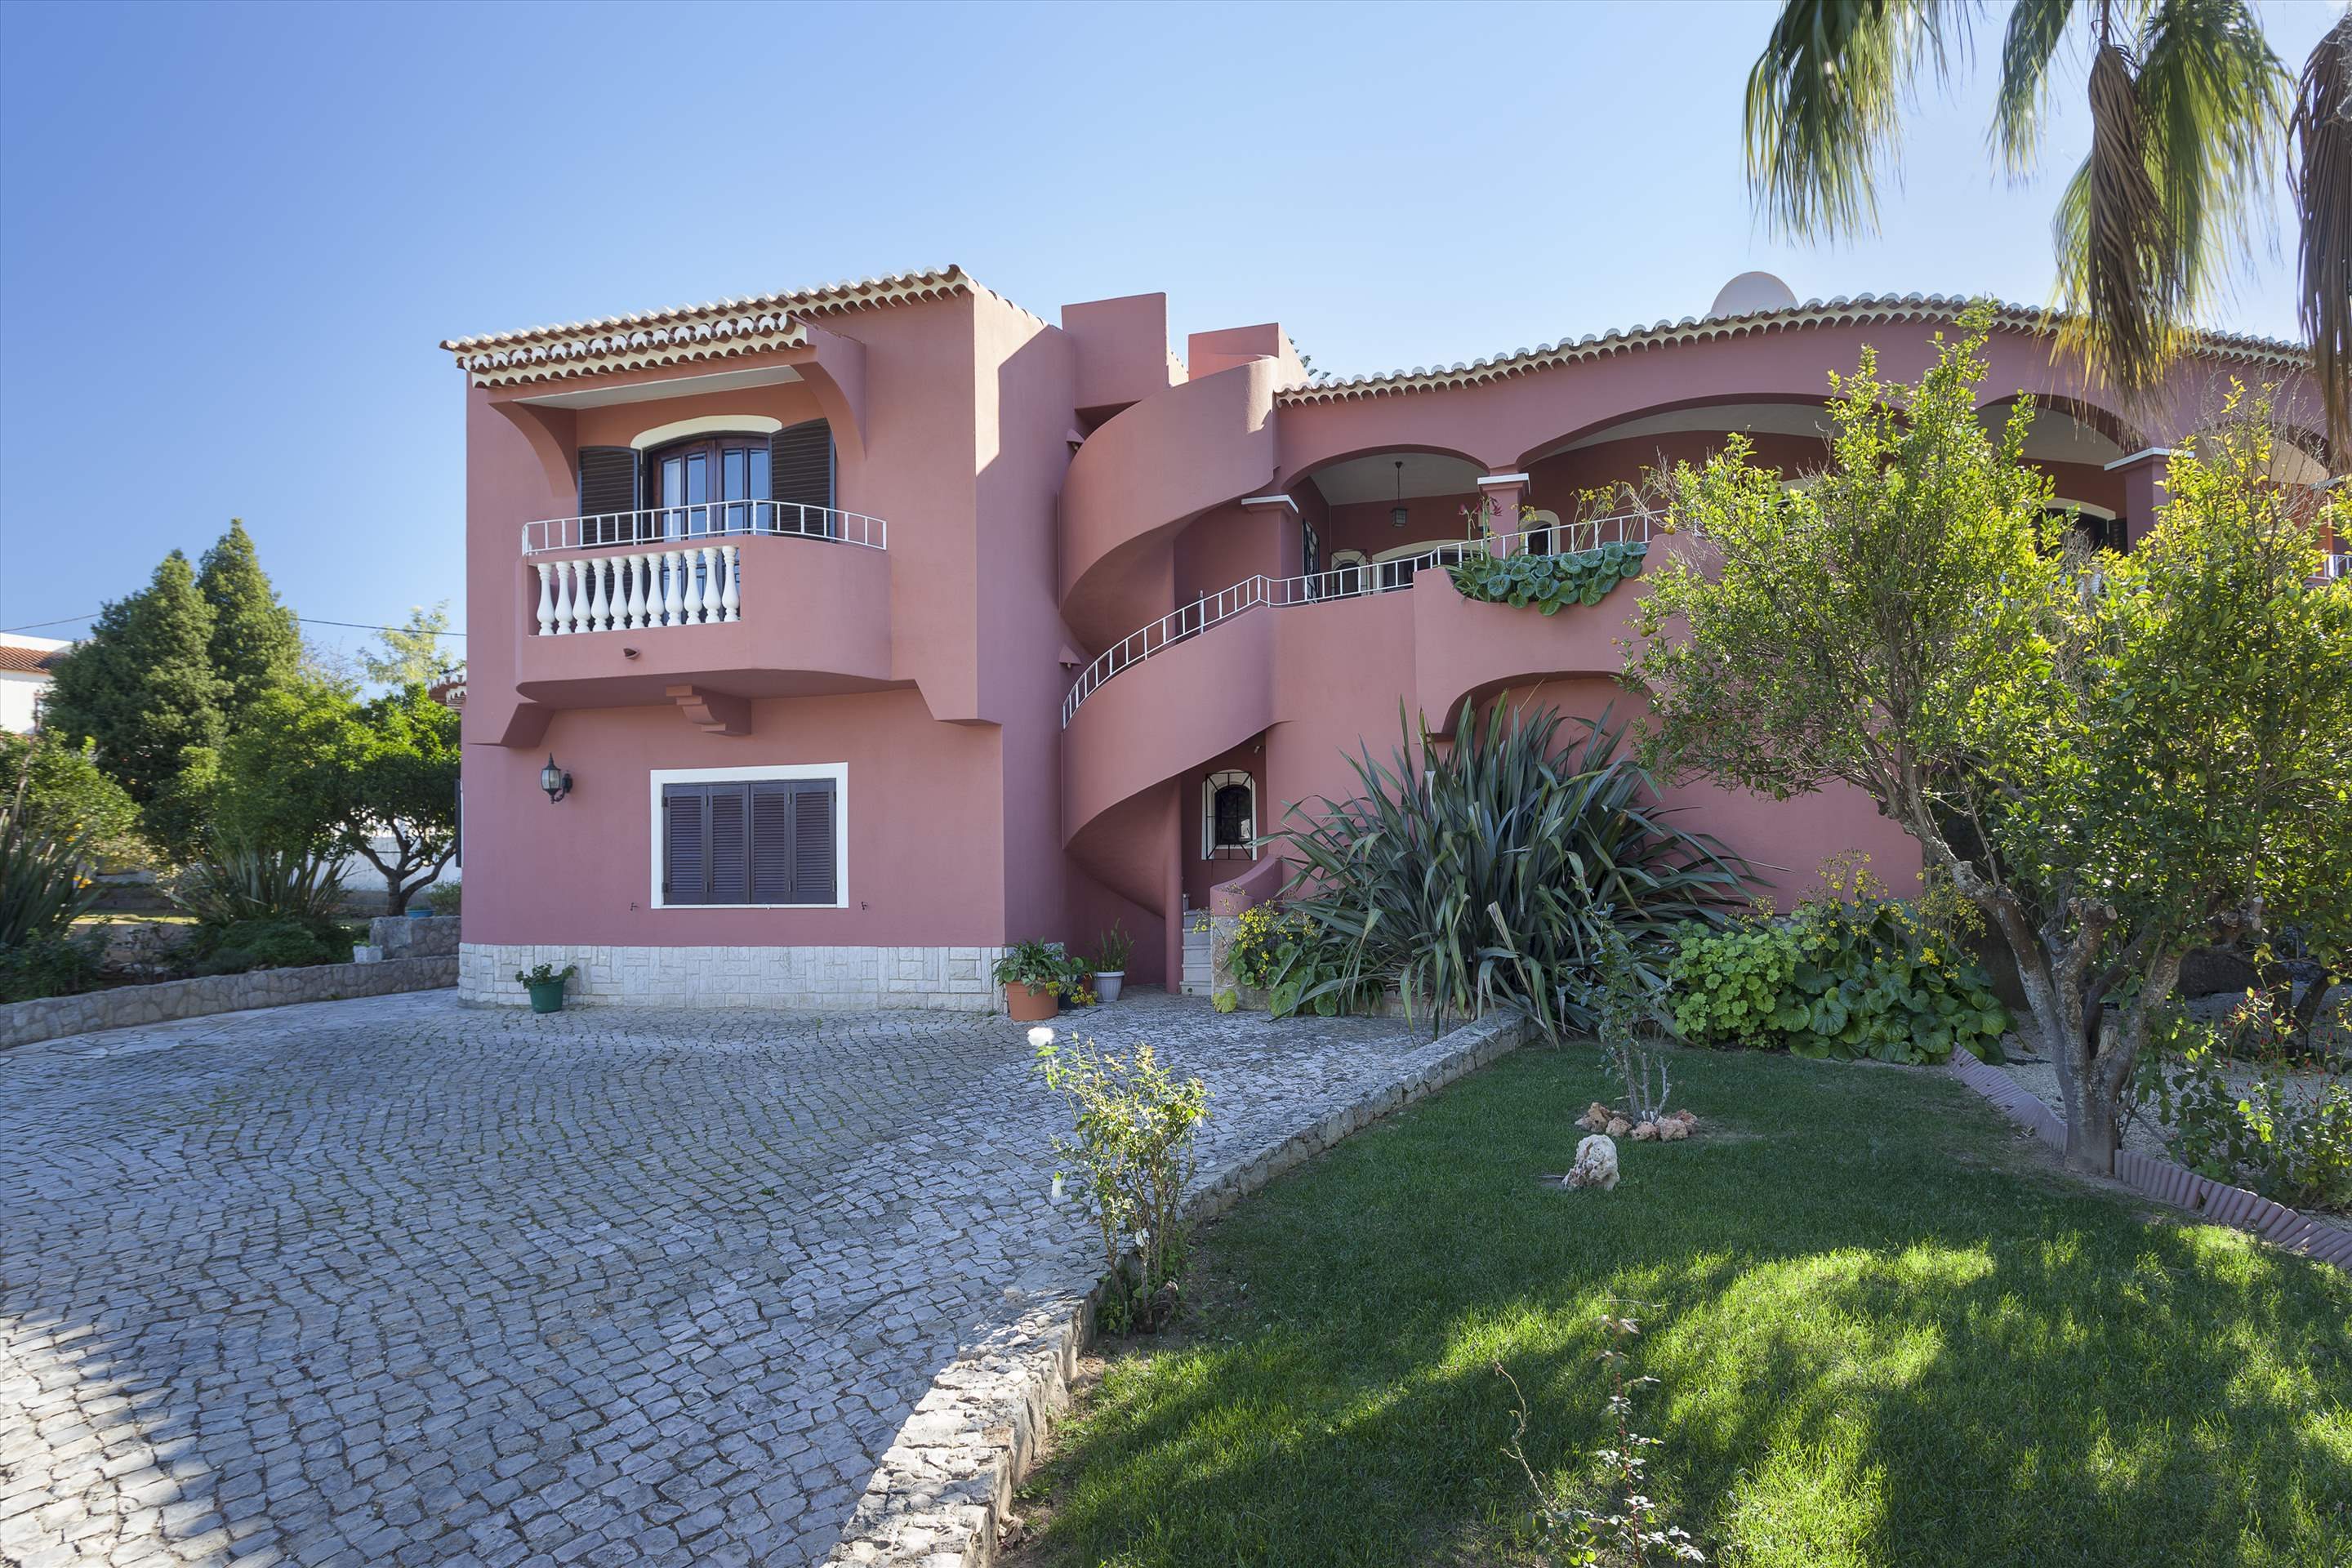 Vivenda Joao Pedro, 4 bedroom villa in Carvoeiro Area, Algarve Photo #7